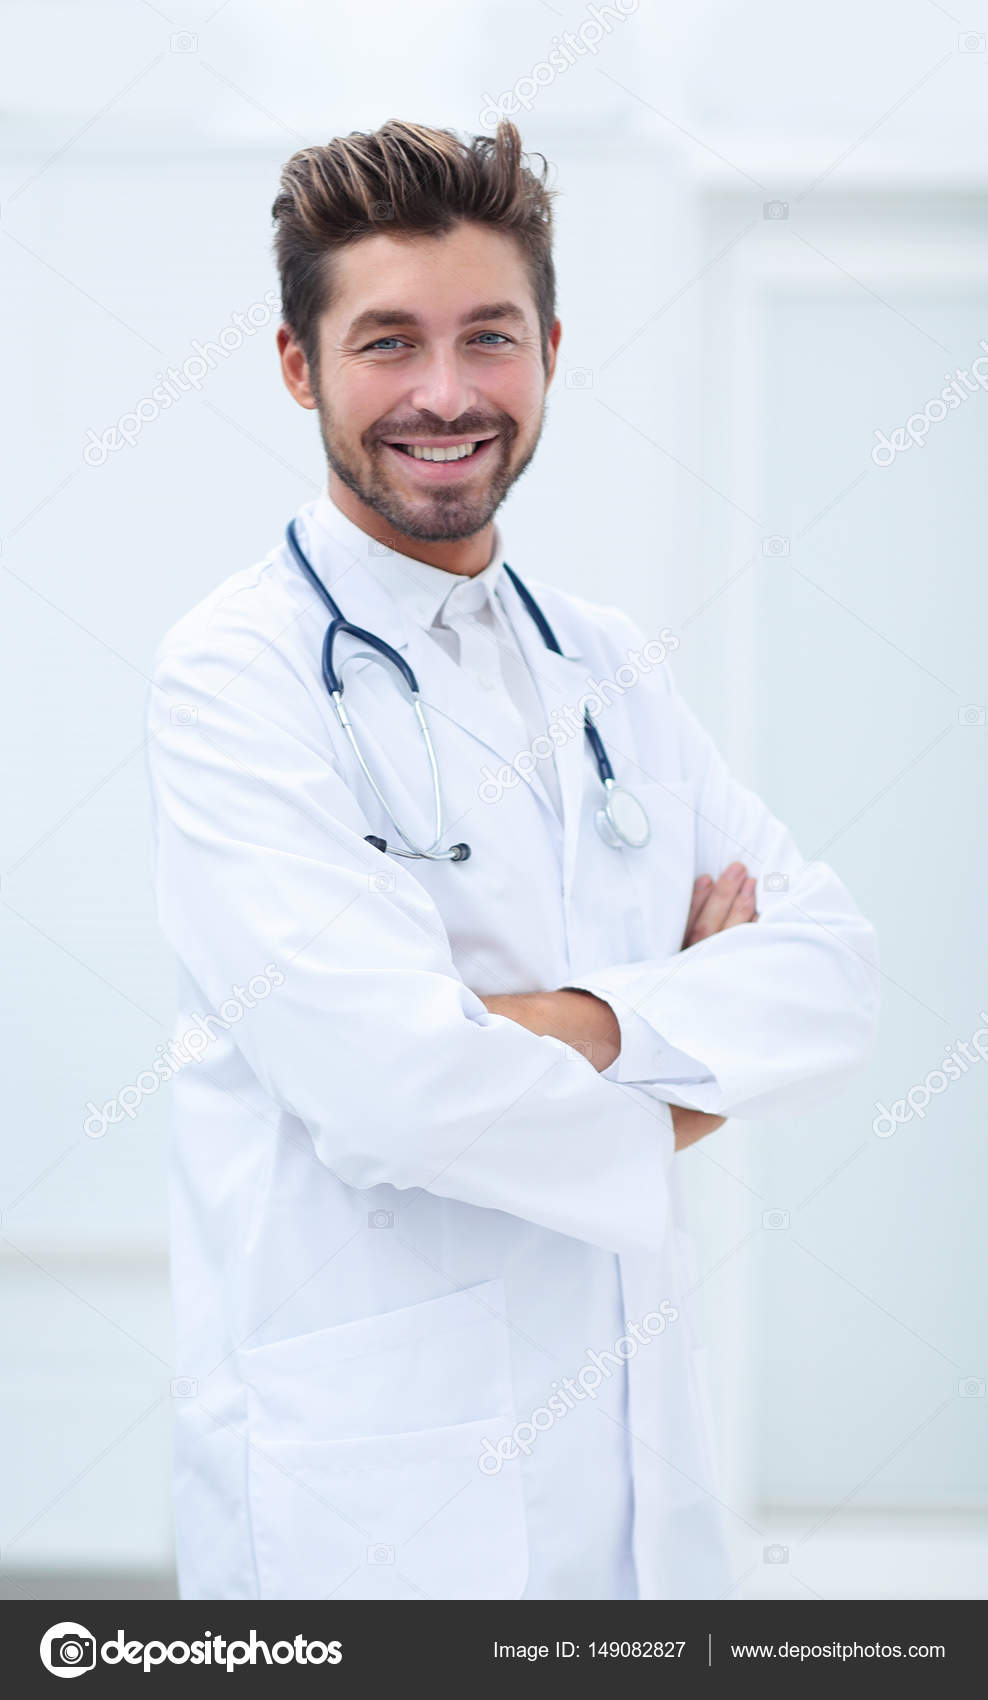 Portrait Of A Smiling Doctor With A Stethoscope Around Neck Stock Photo C Depositedhar 149082827